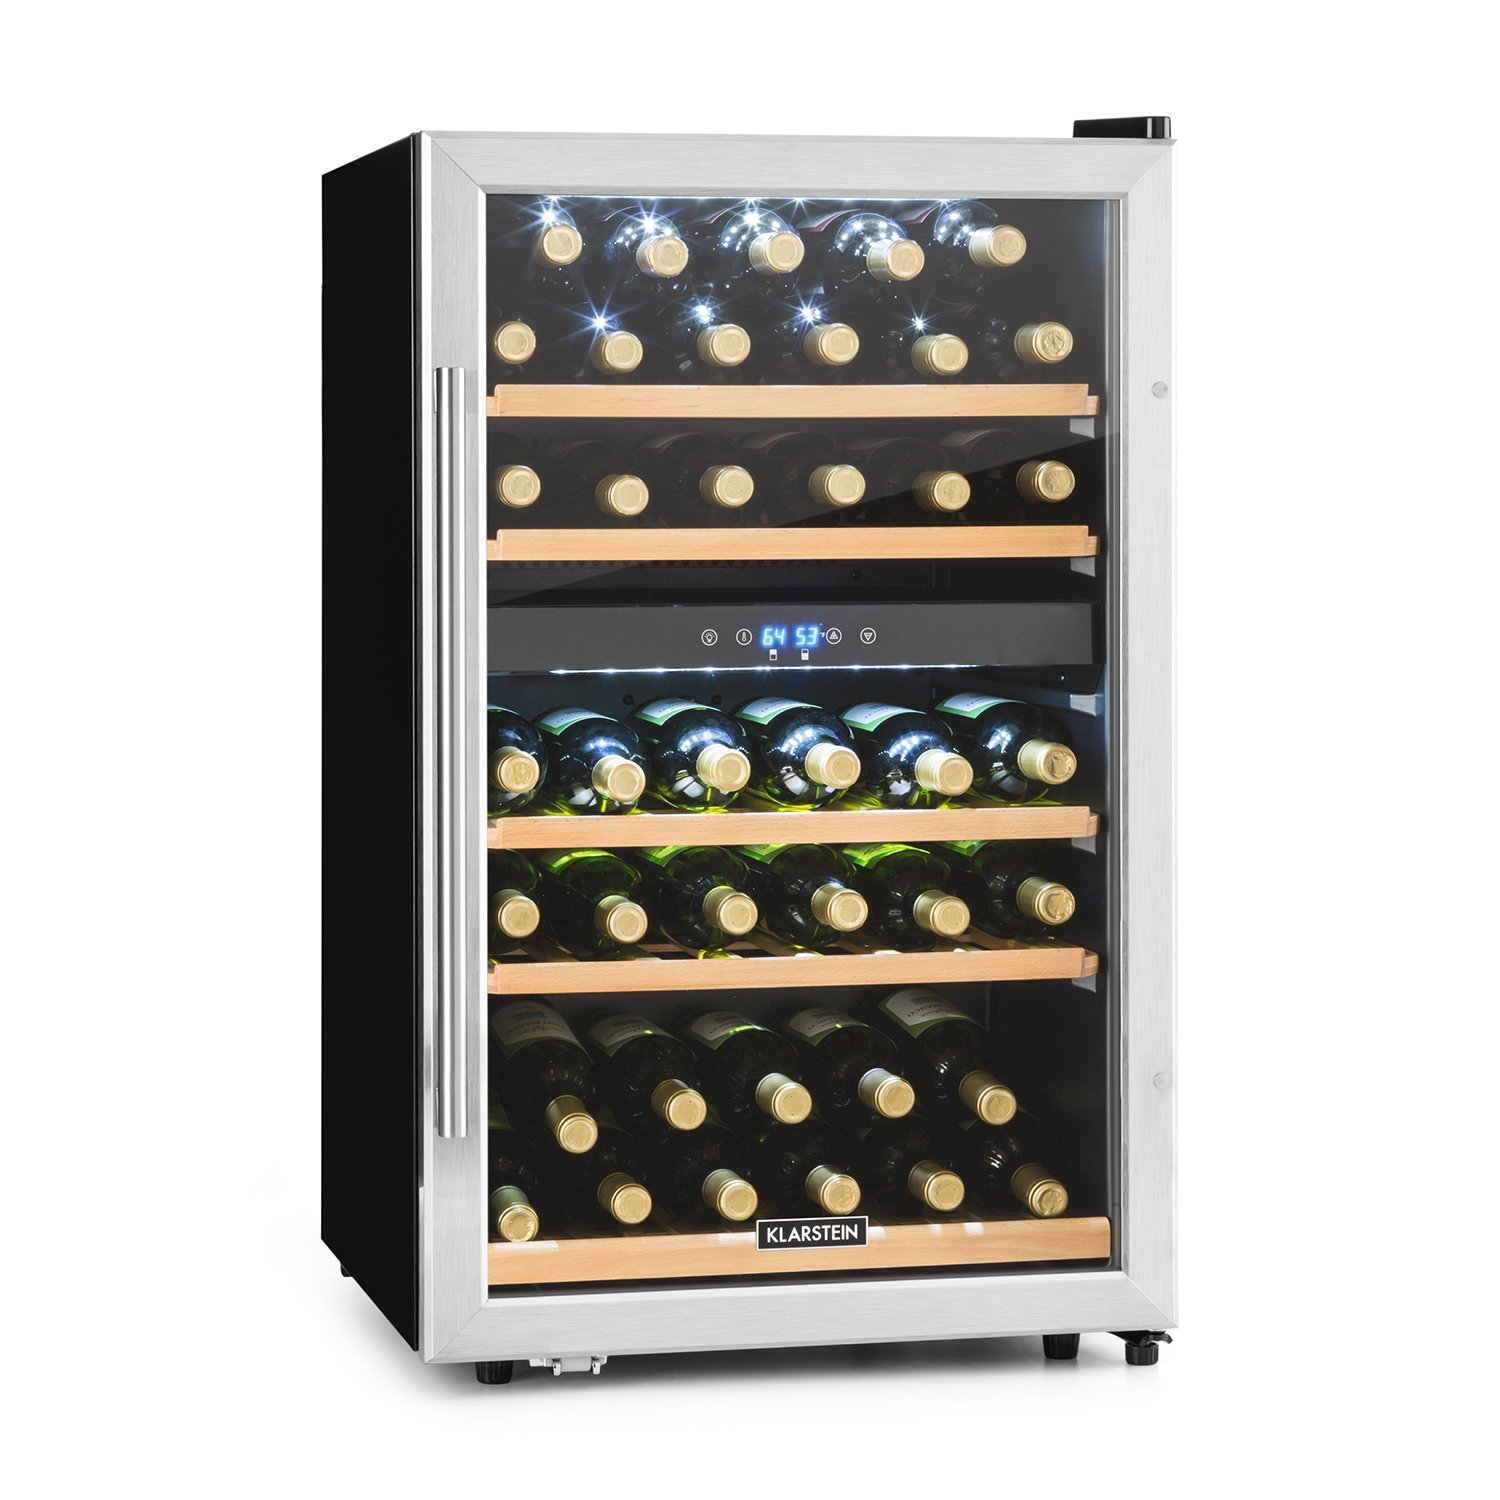 KLARSTEIN Vinamour 40D Wine Refrigerator • Beverage Cooler • 2 Cooling Zones • 4.8 Cubic Feet • LCD-Display • Stainless Steel Front • Touch Control Panel • 5 removable Shelf Racks • Silver